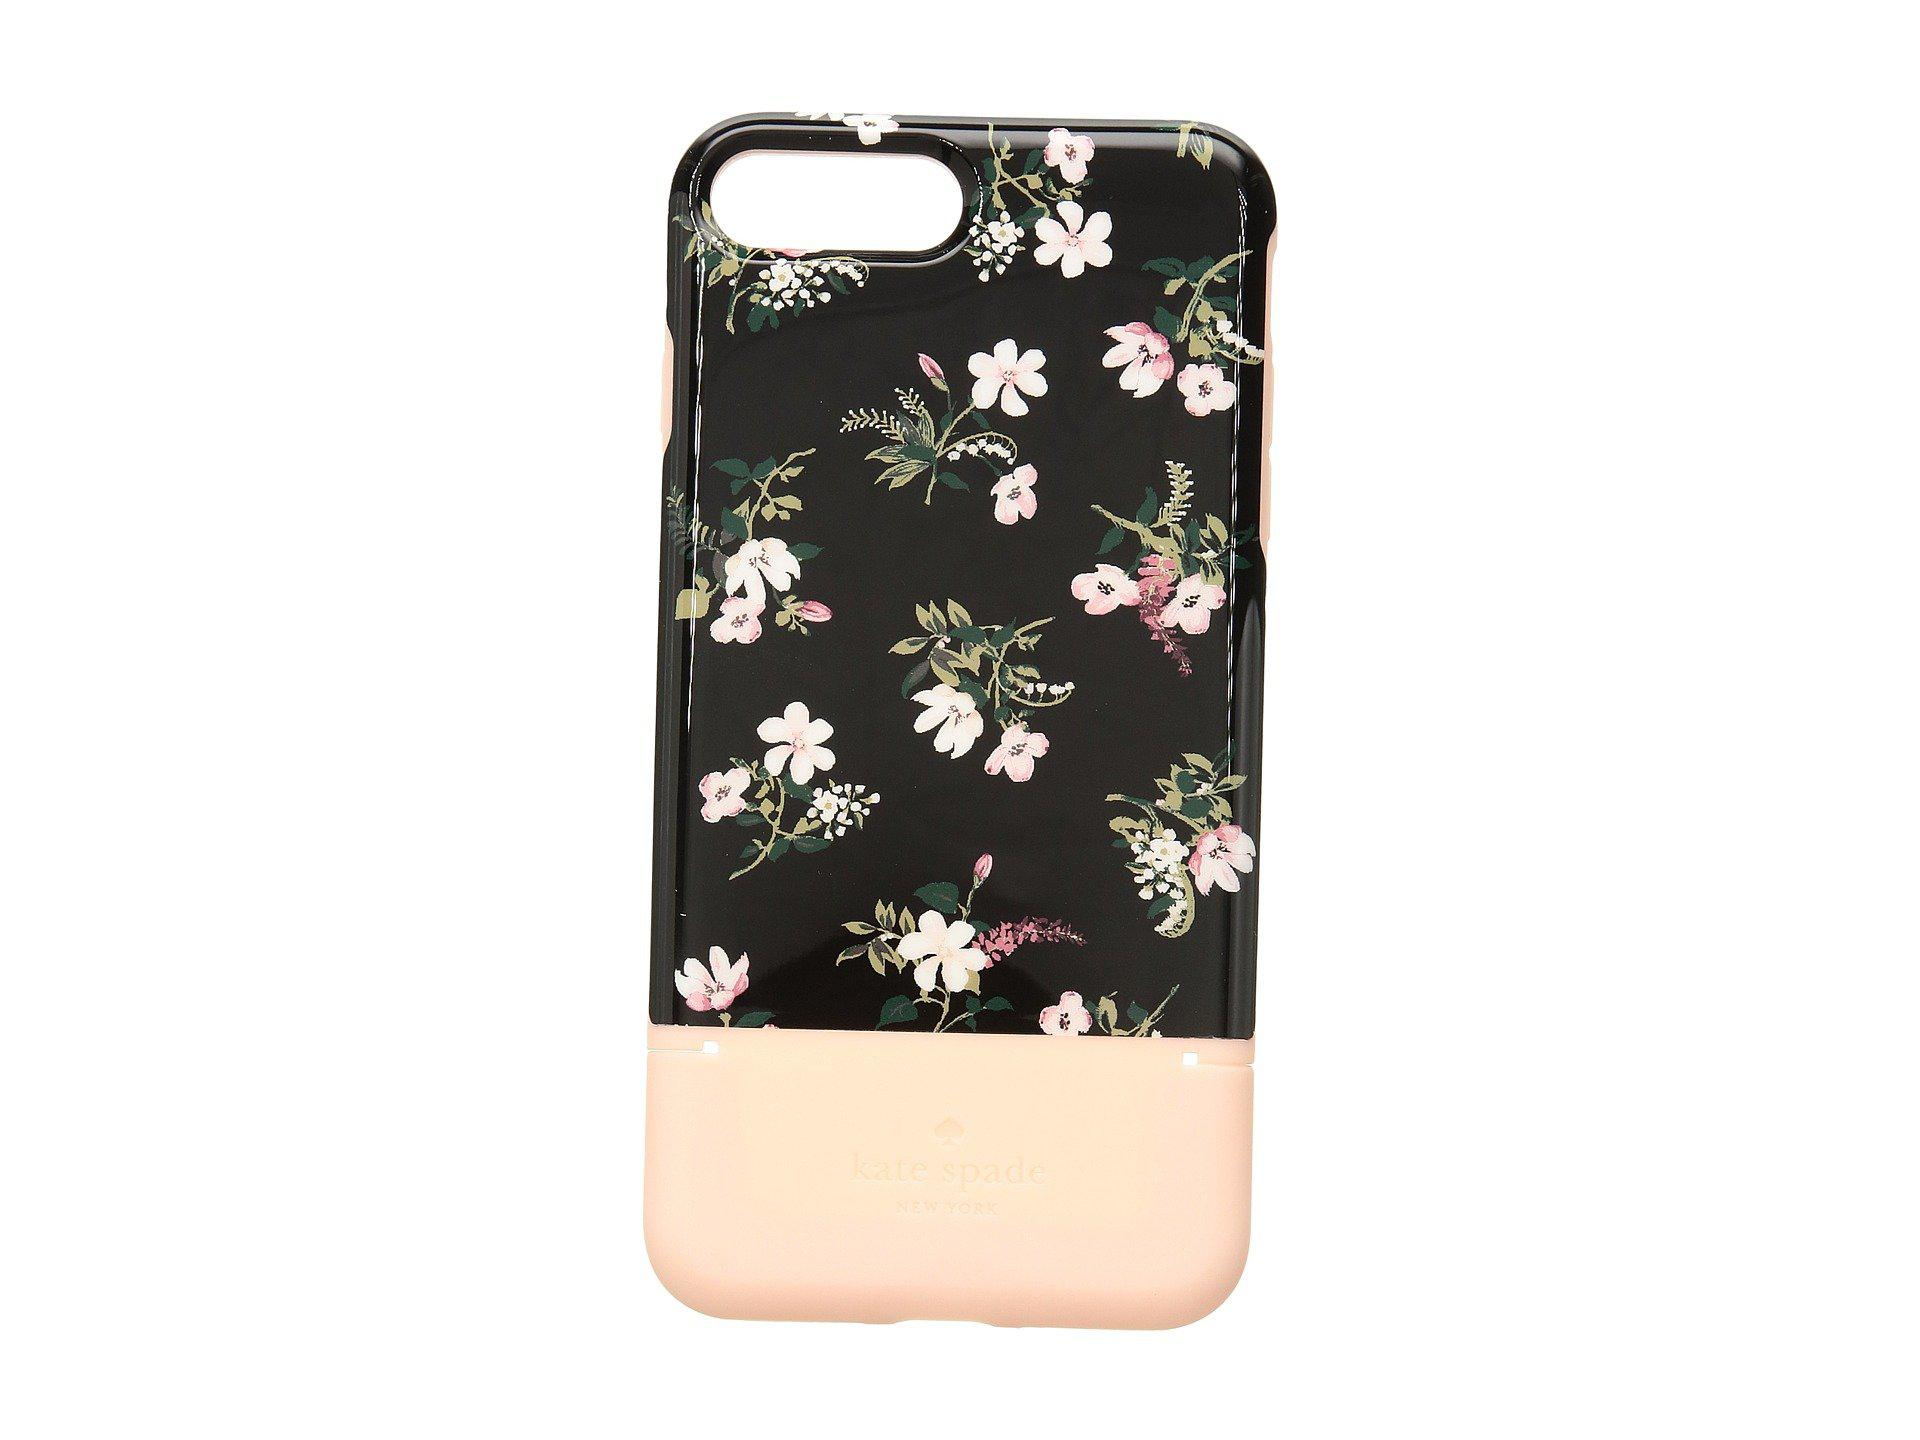 new product 51ed1 c5544 Women's Flora Credit Card Case For Iphone® 7 Plus/iphone® 8 Plus